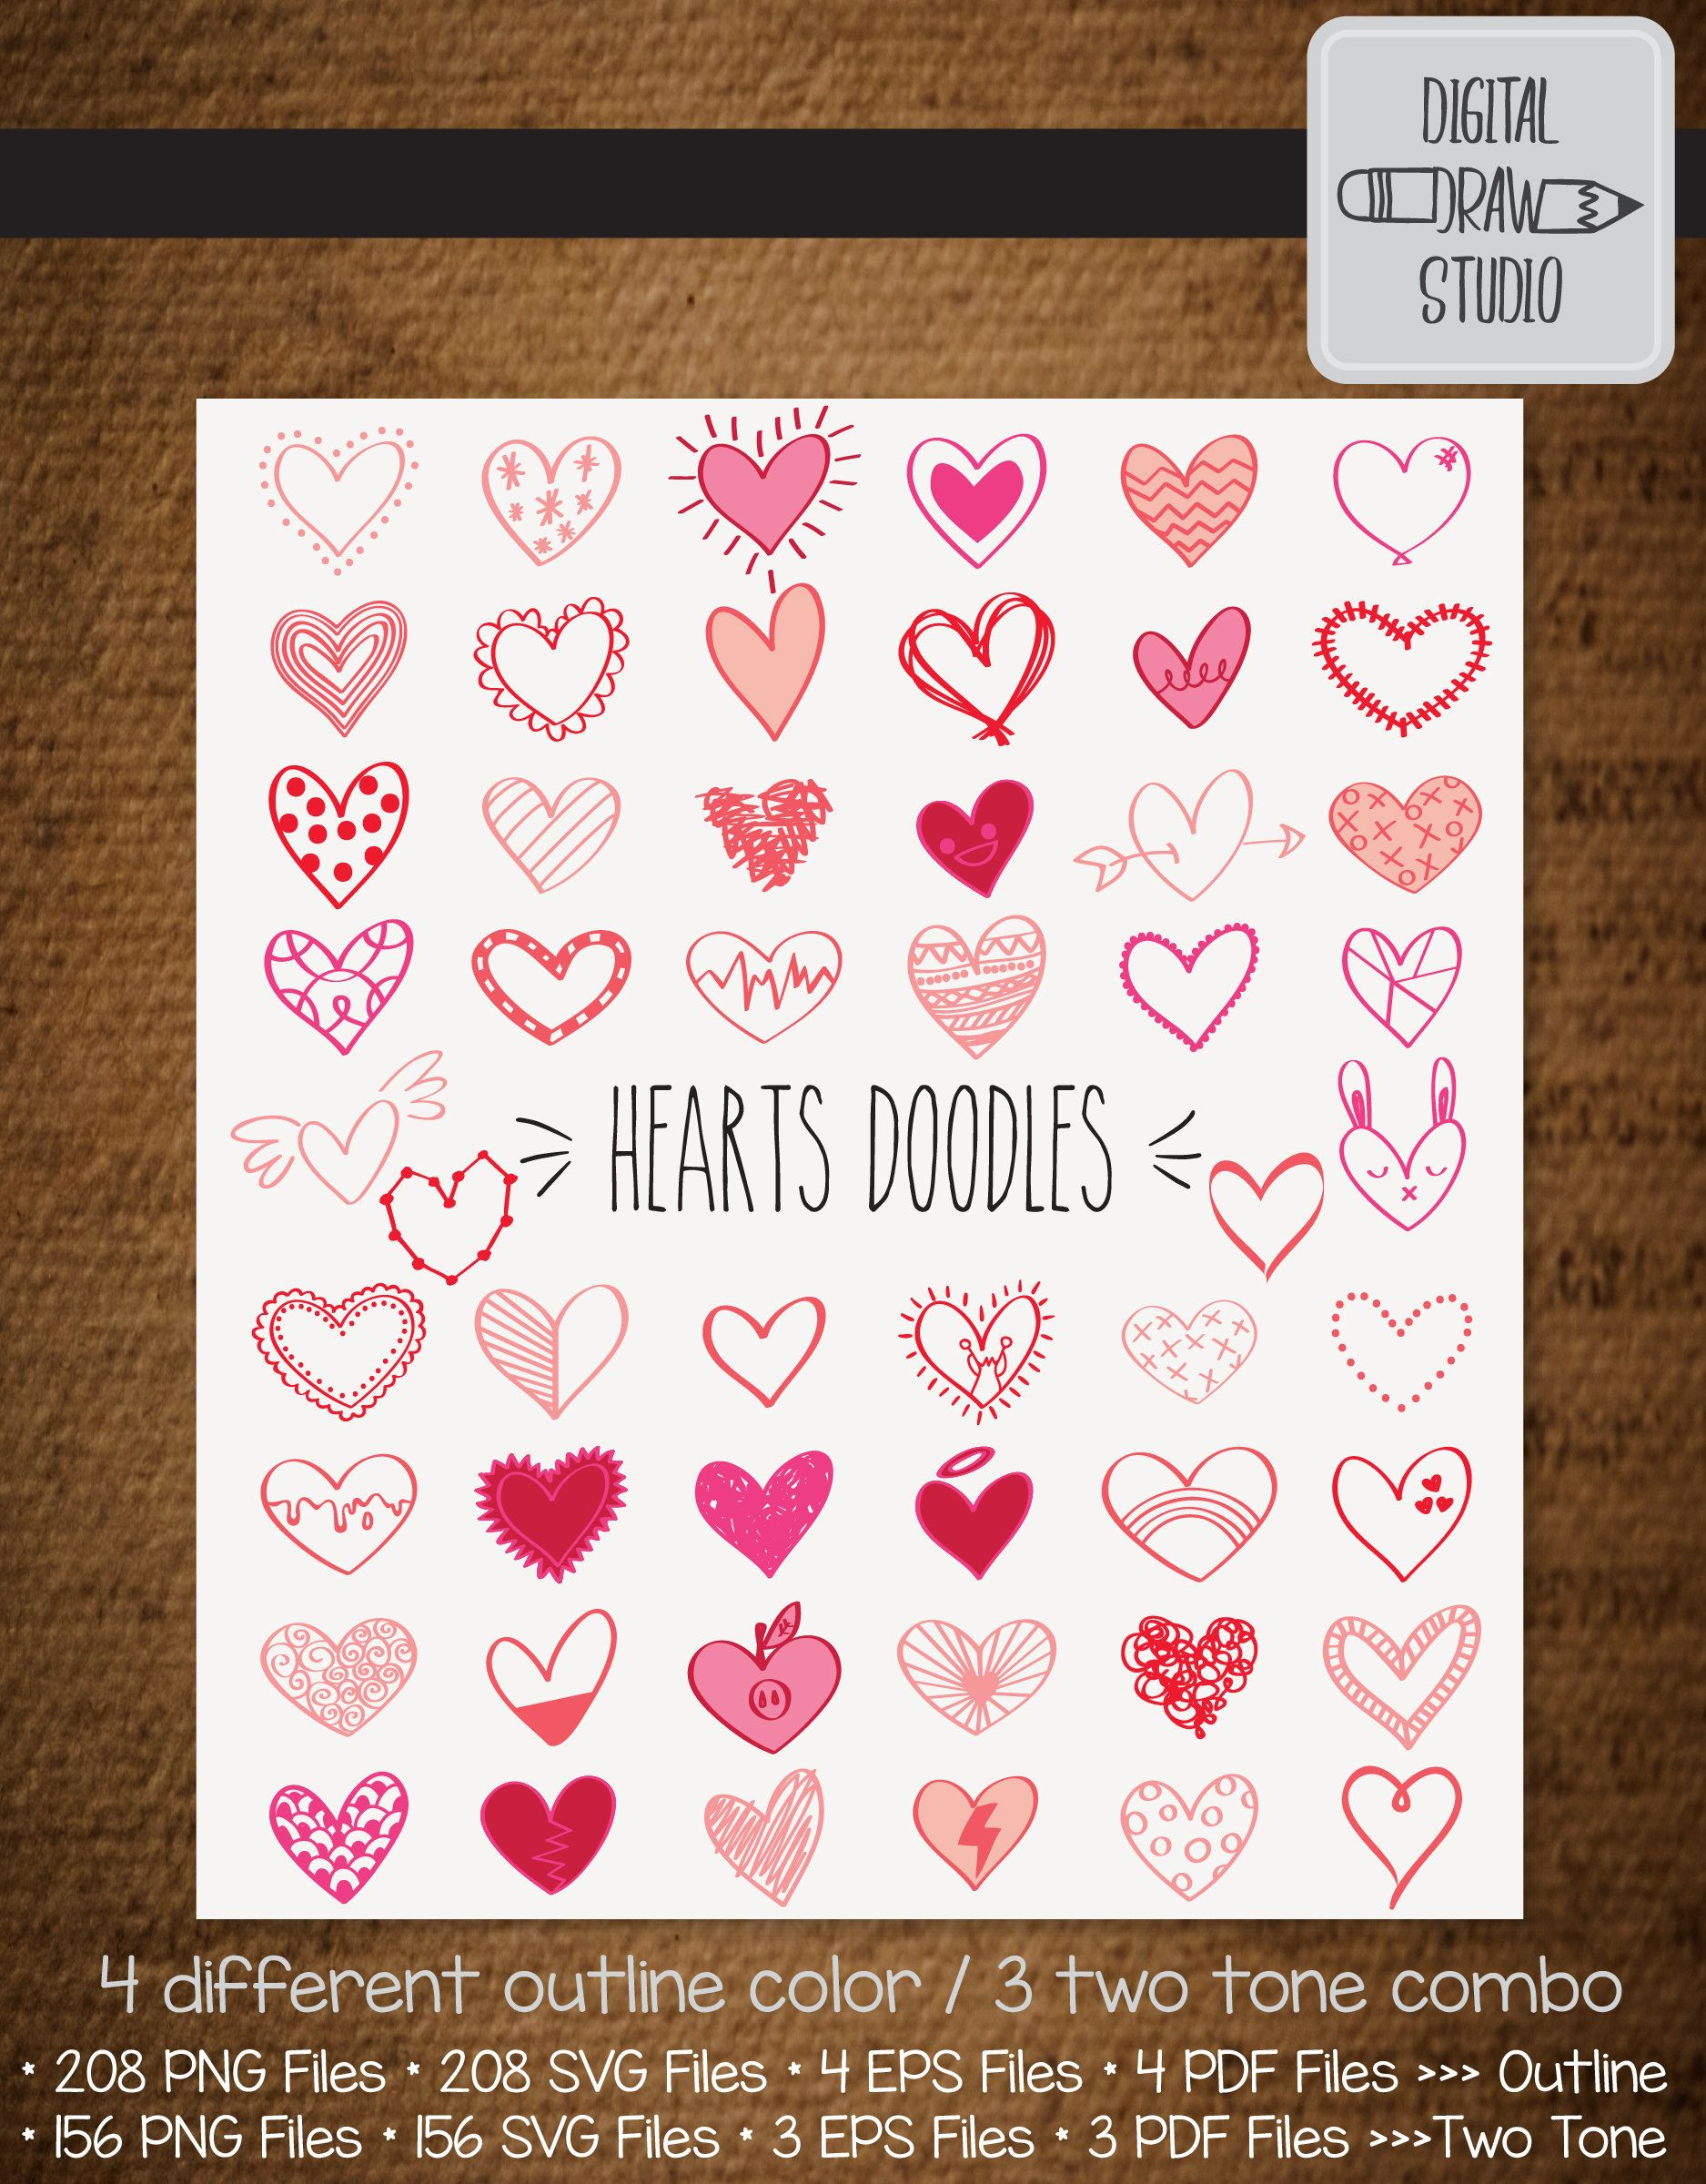 52 Colored Hearts Clip Art Bundle Hand Drawn Heart